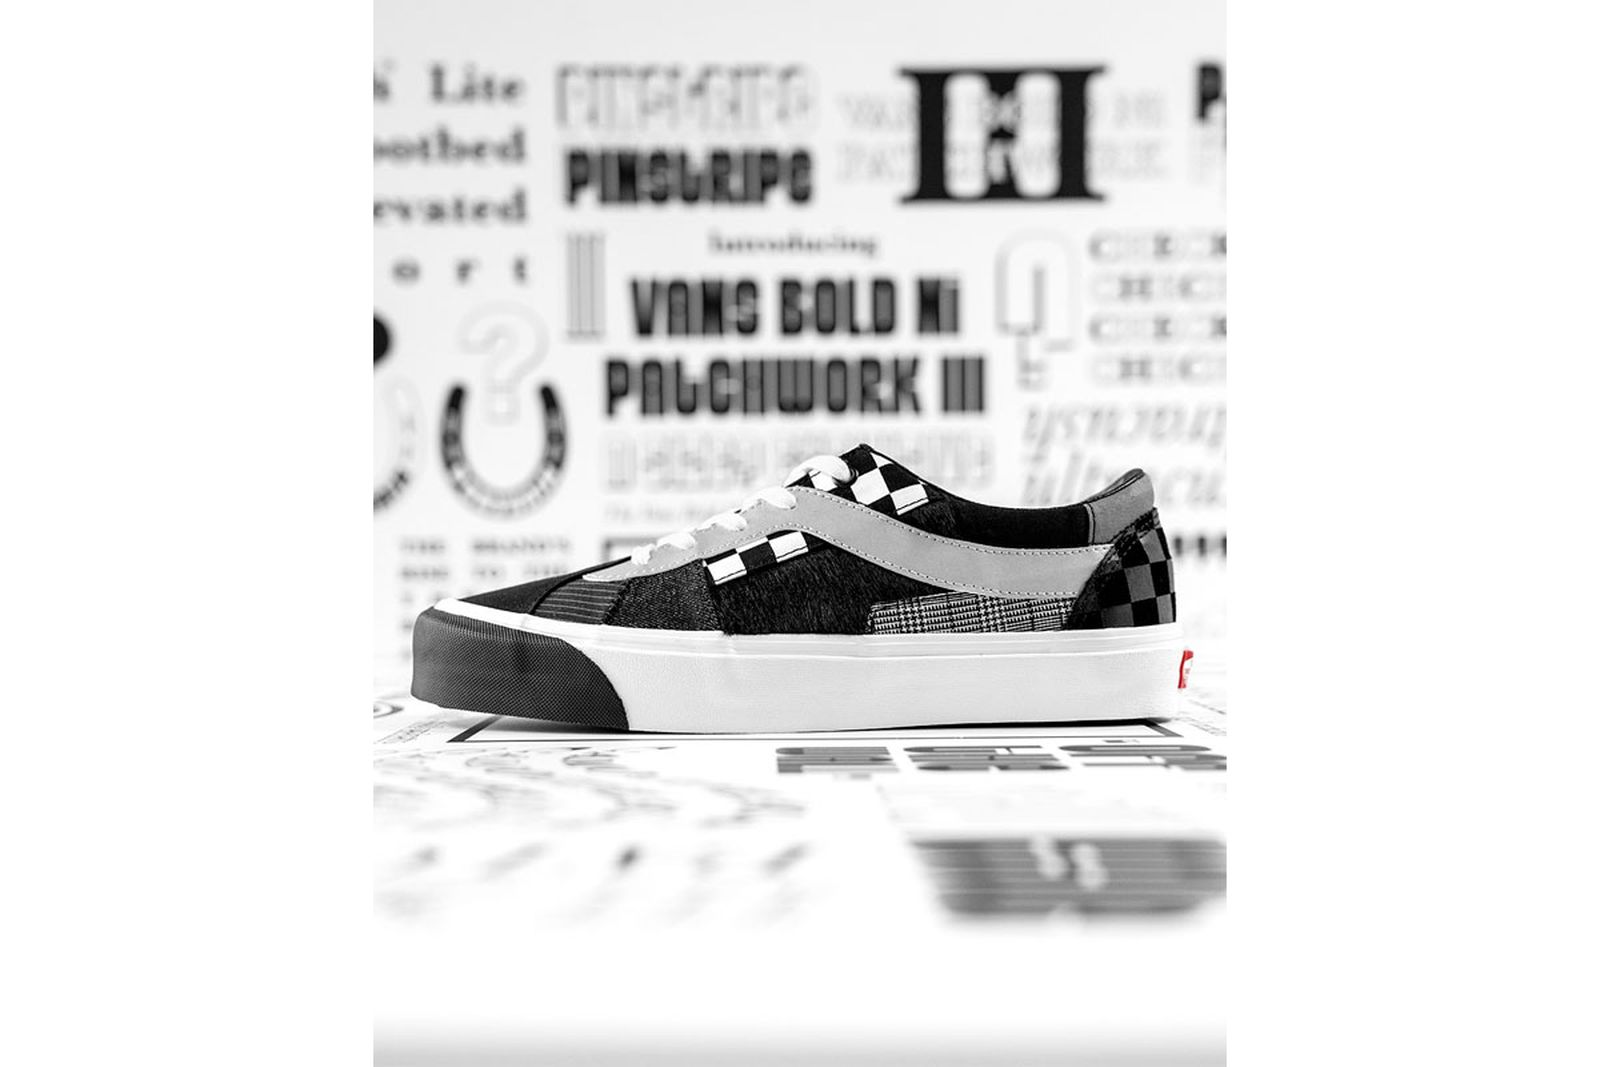 size vans bold ni patchwork iii release date price